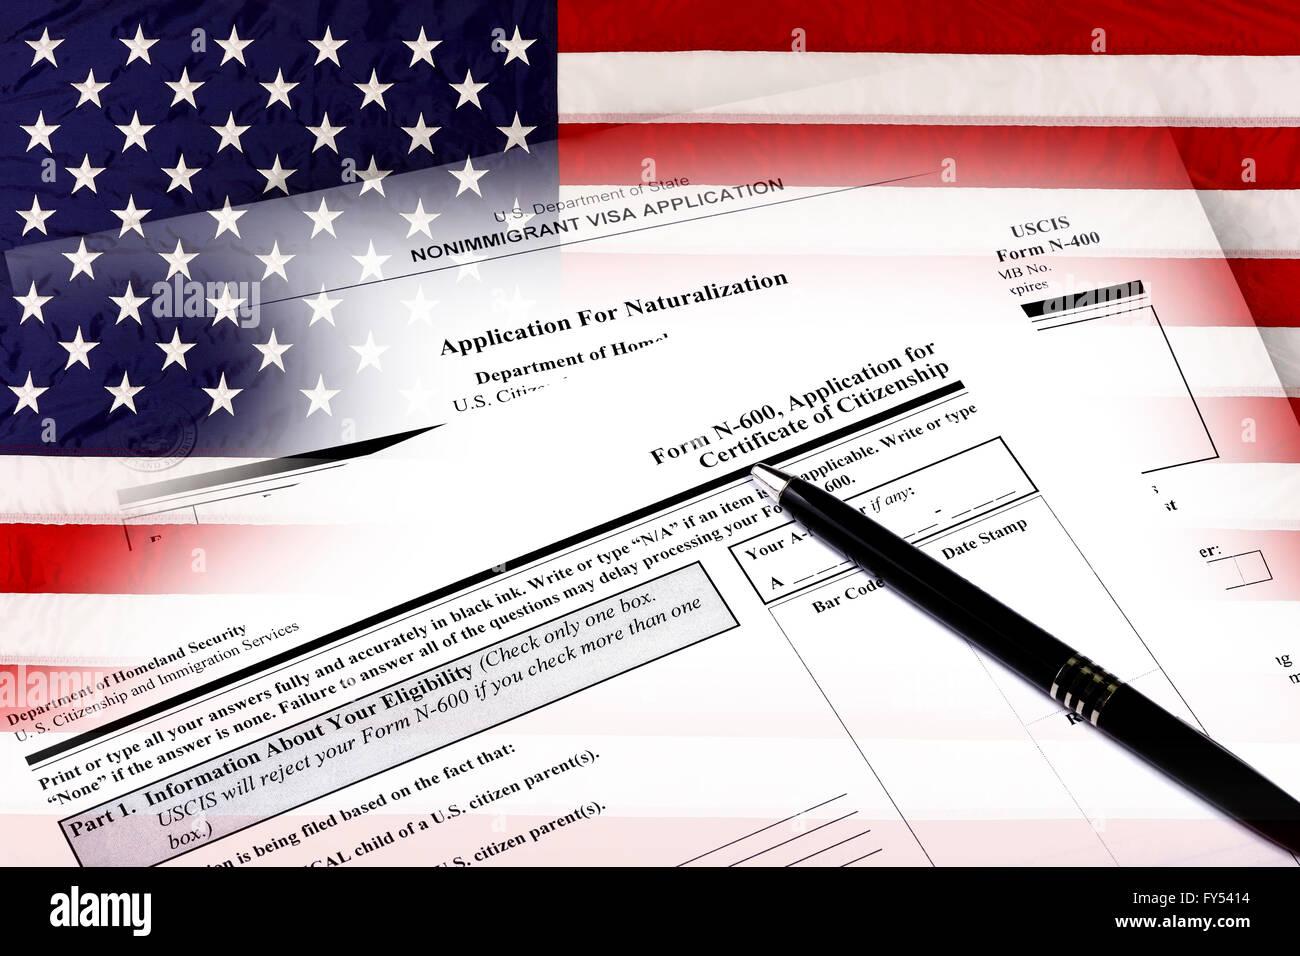 Immigration naturalization application and USA flag concept of citizenship and American patriotism. - Stock Image